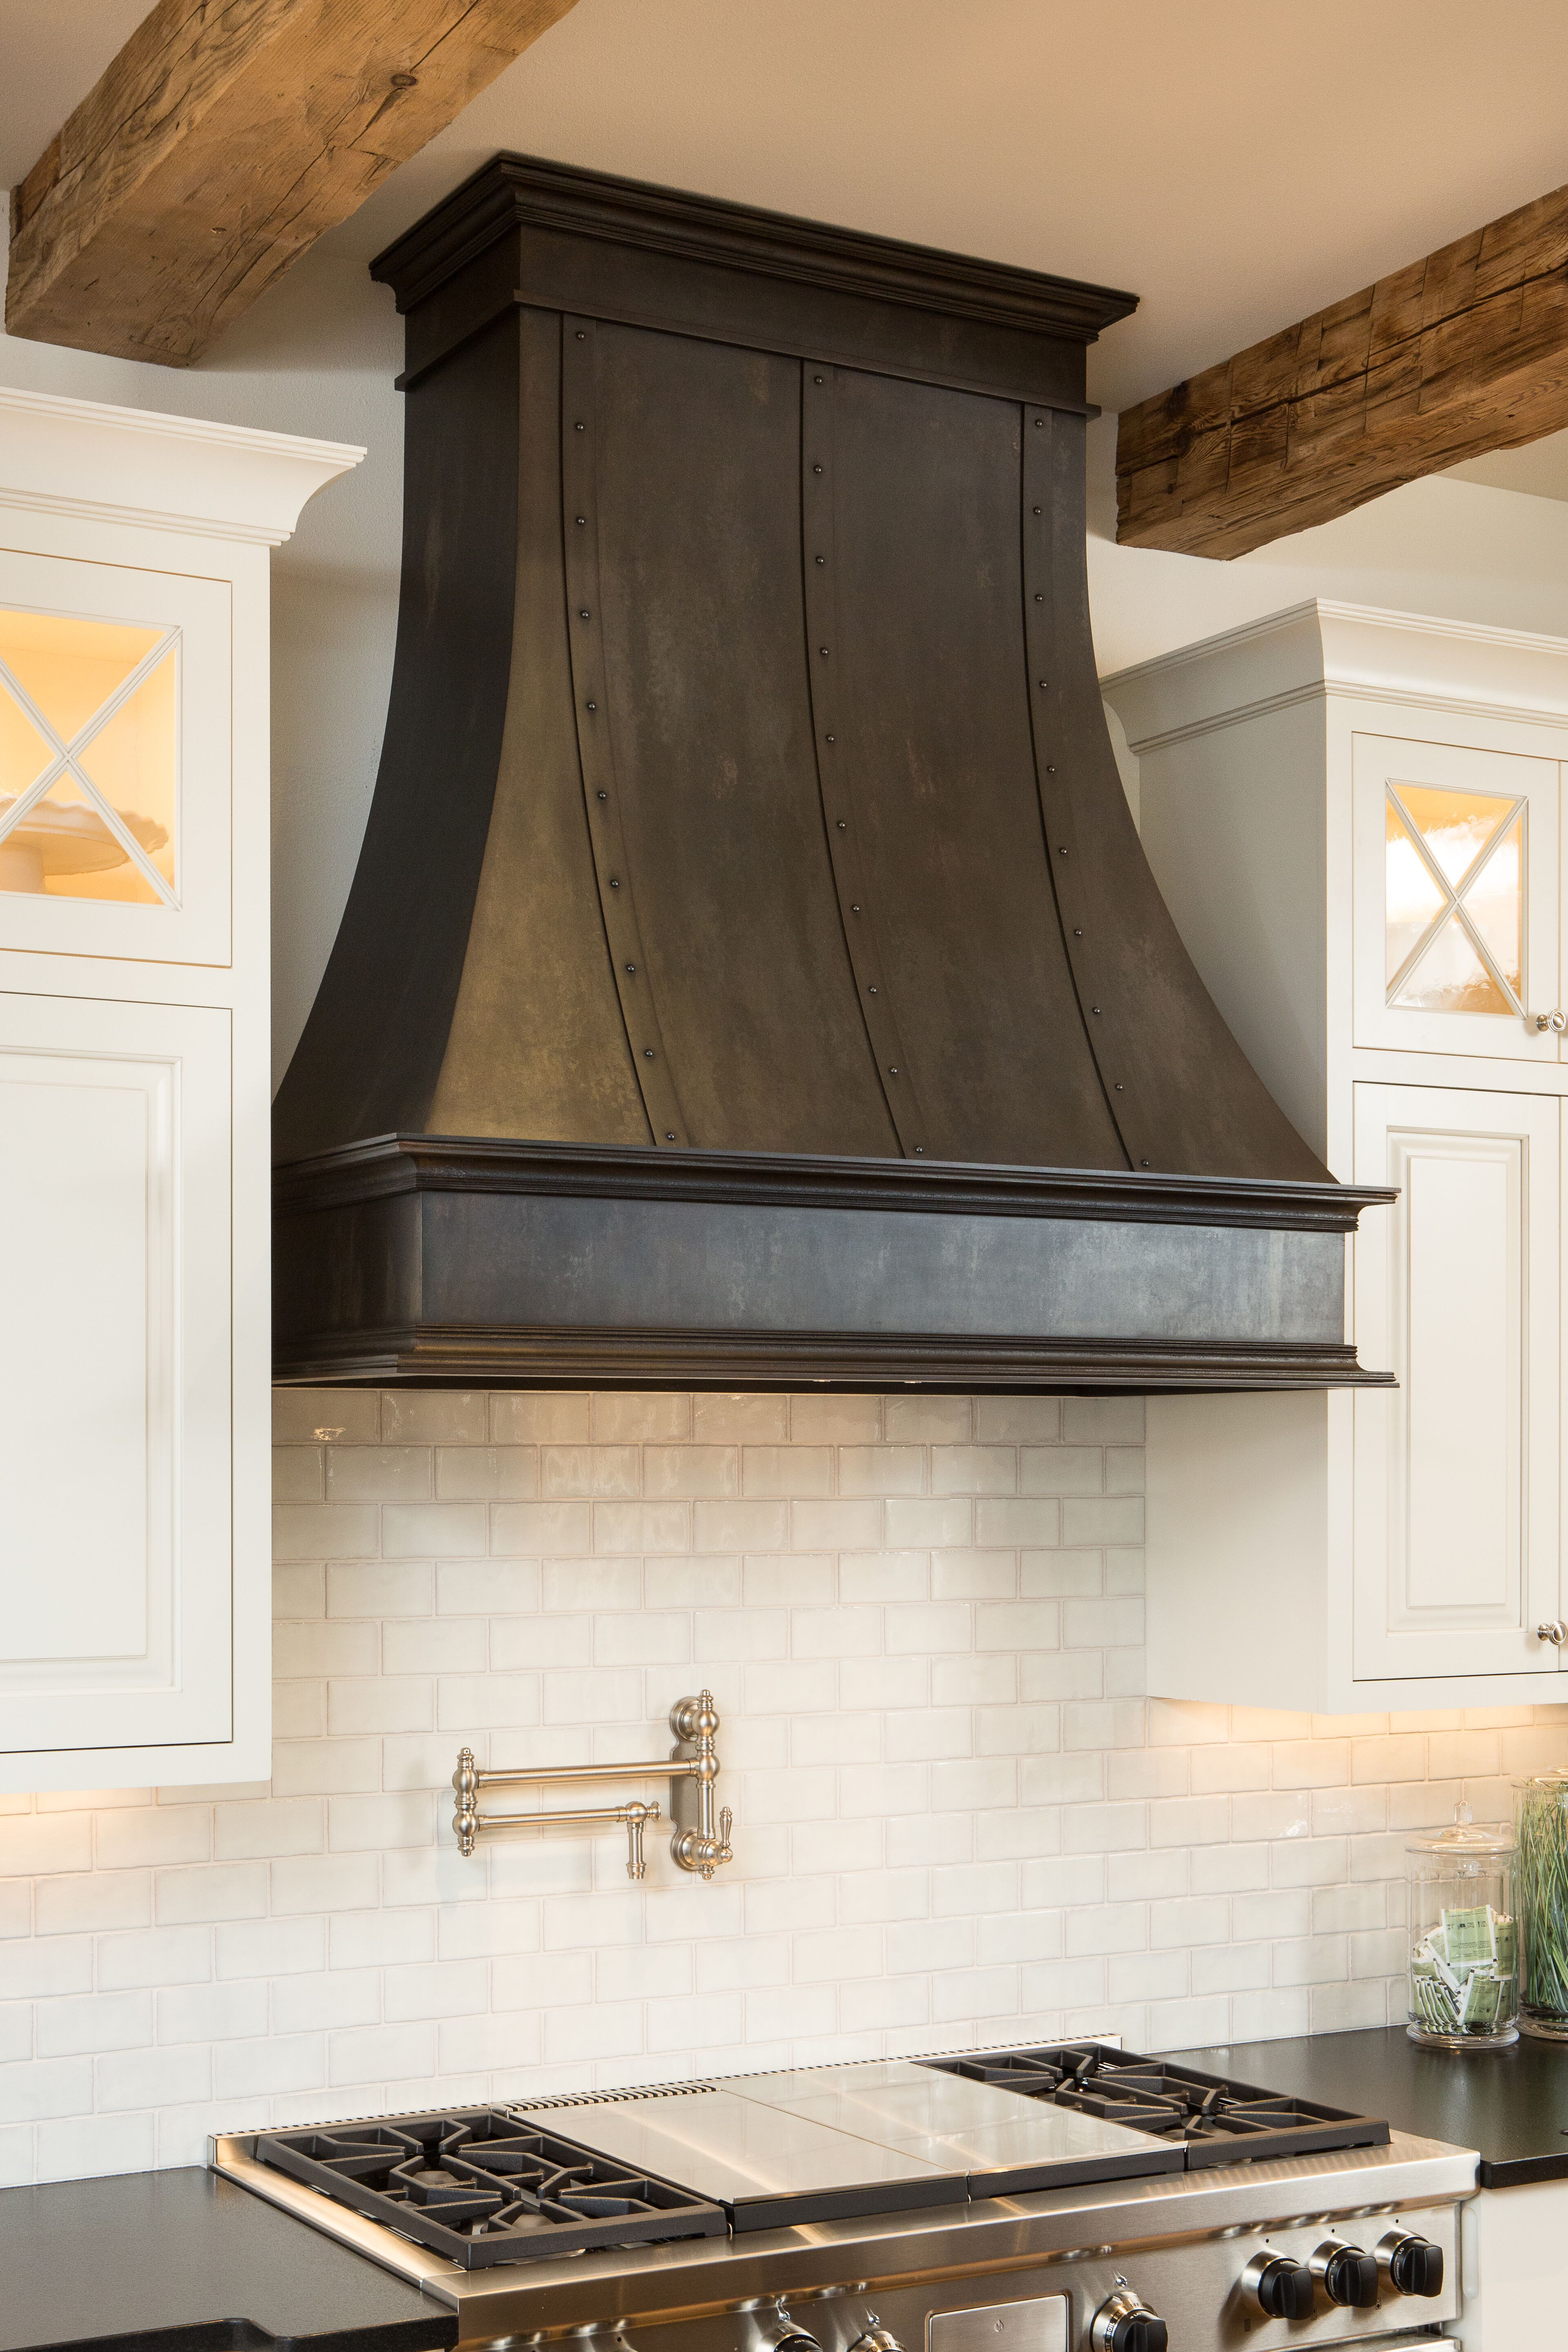 Kitchen Vent Raw Urth S Dark Washed Patina Finish On A Beautiful Montrose Range